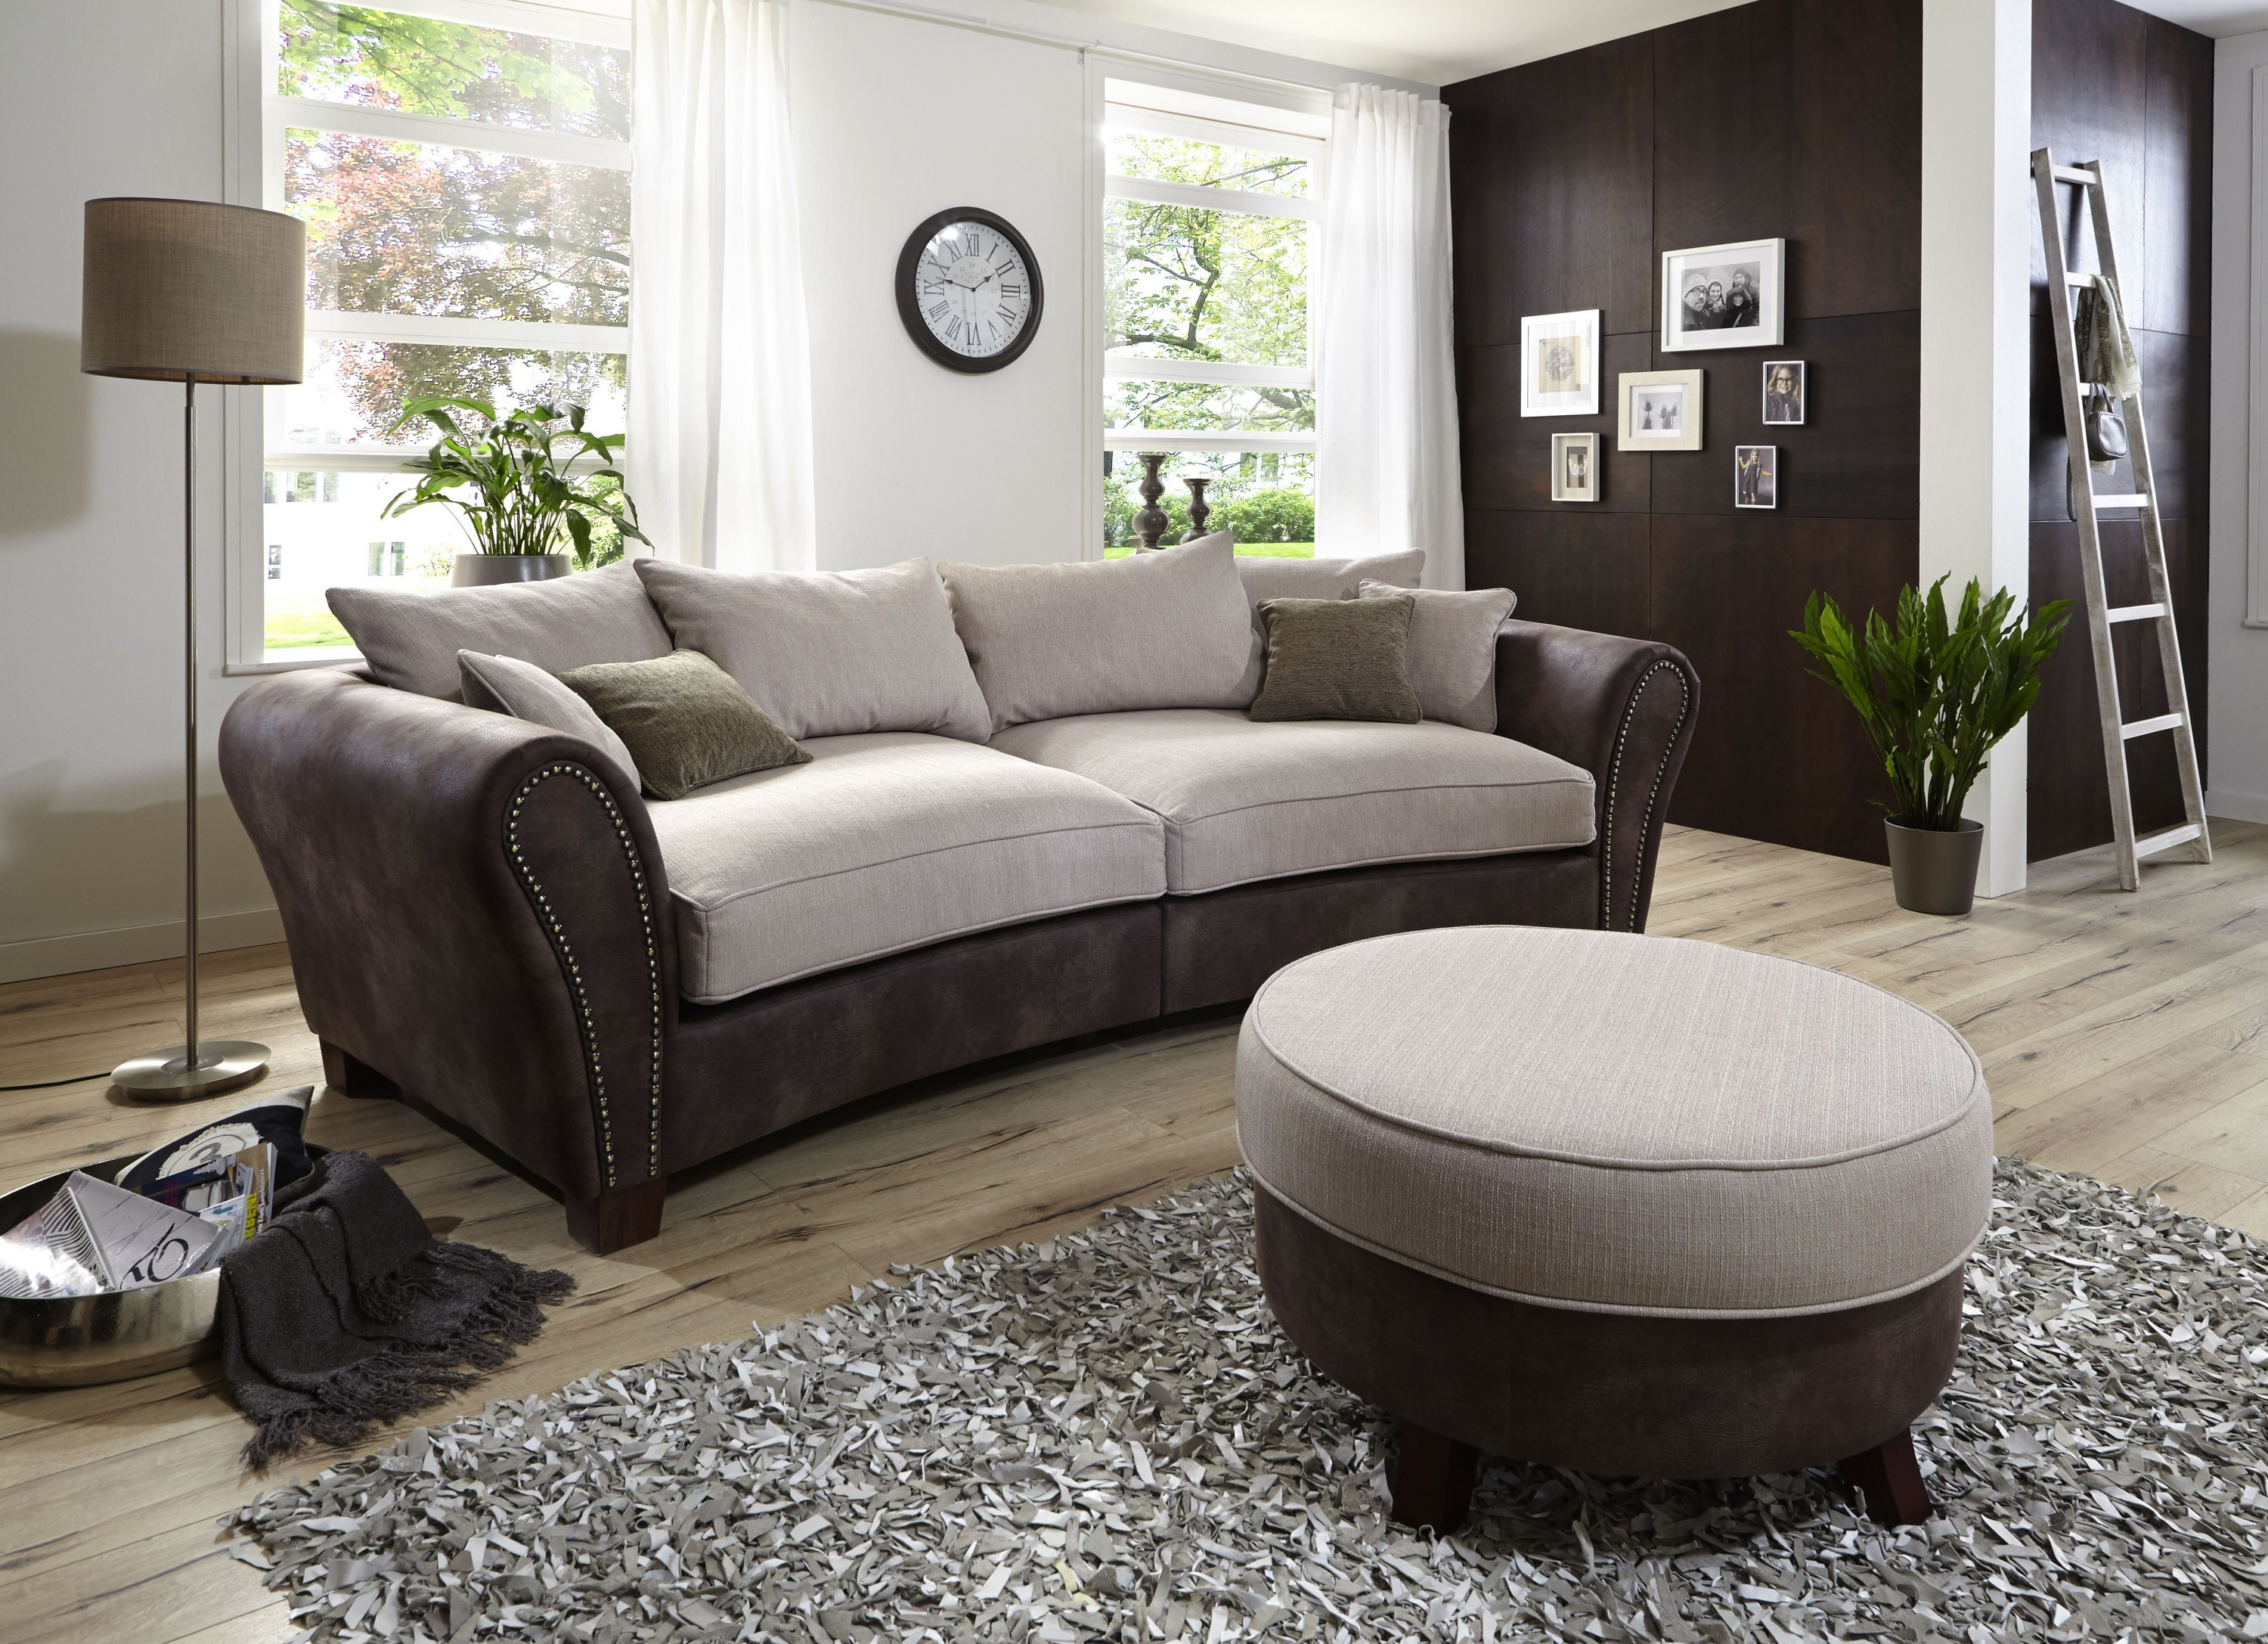 sofa big home the honoroak. Black Bedroom Furniture Sets. Home Design Ideas